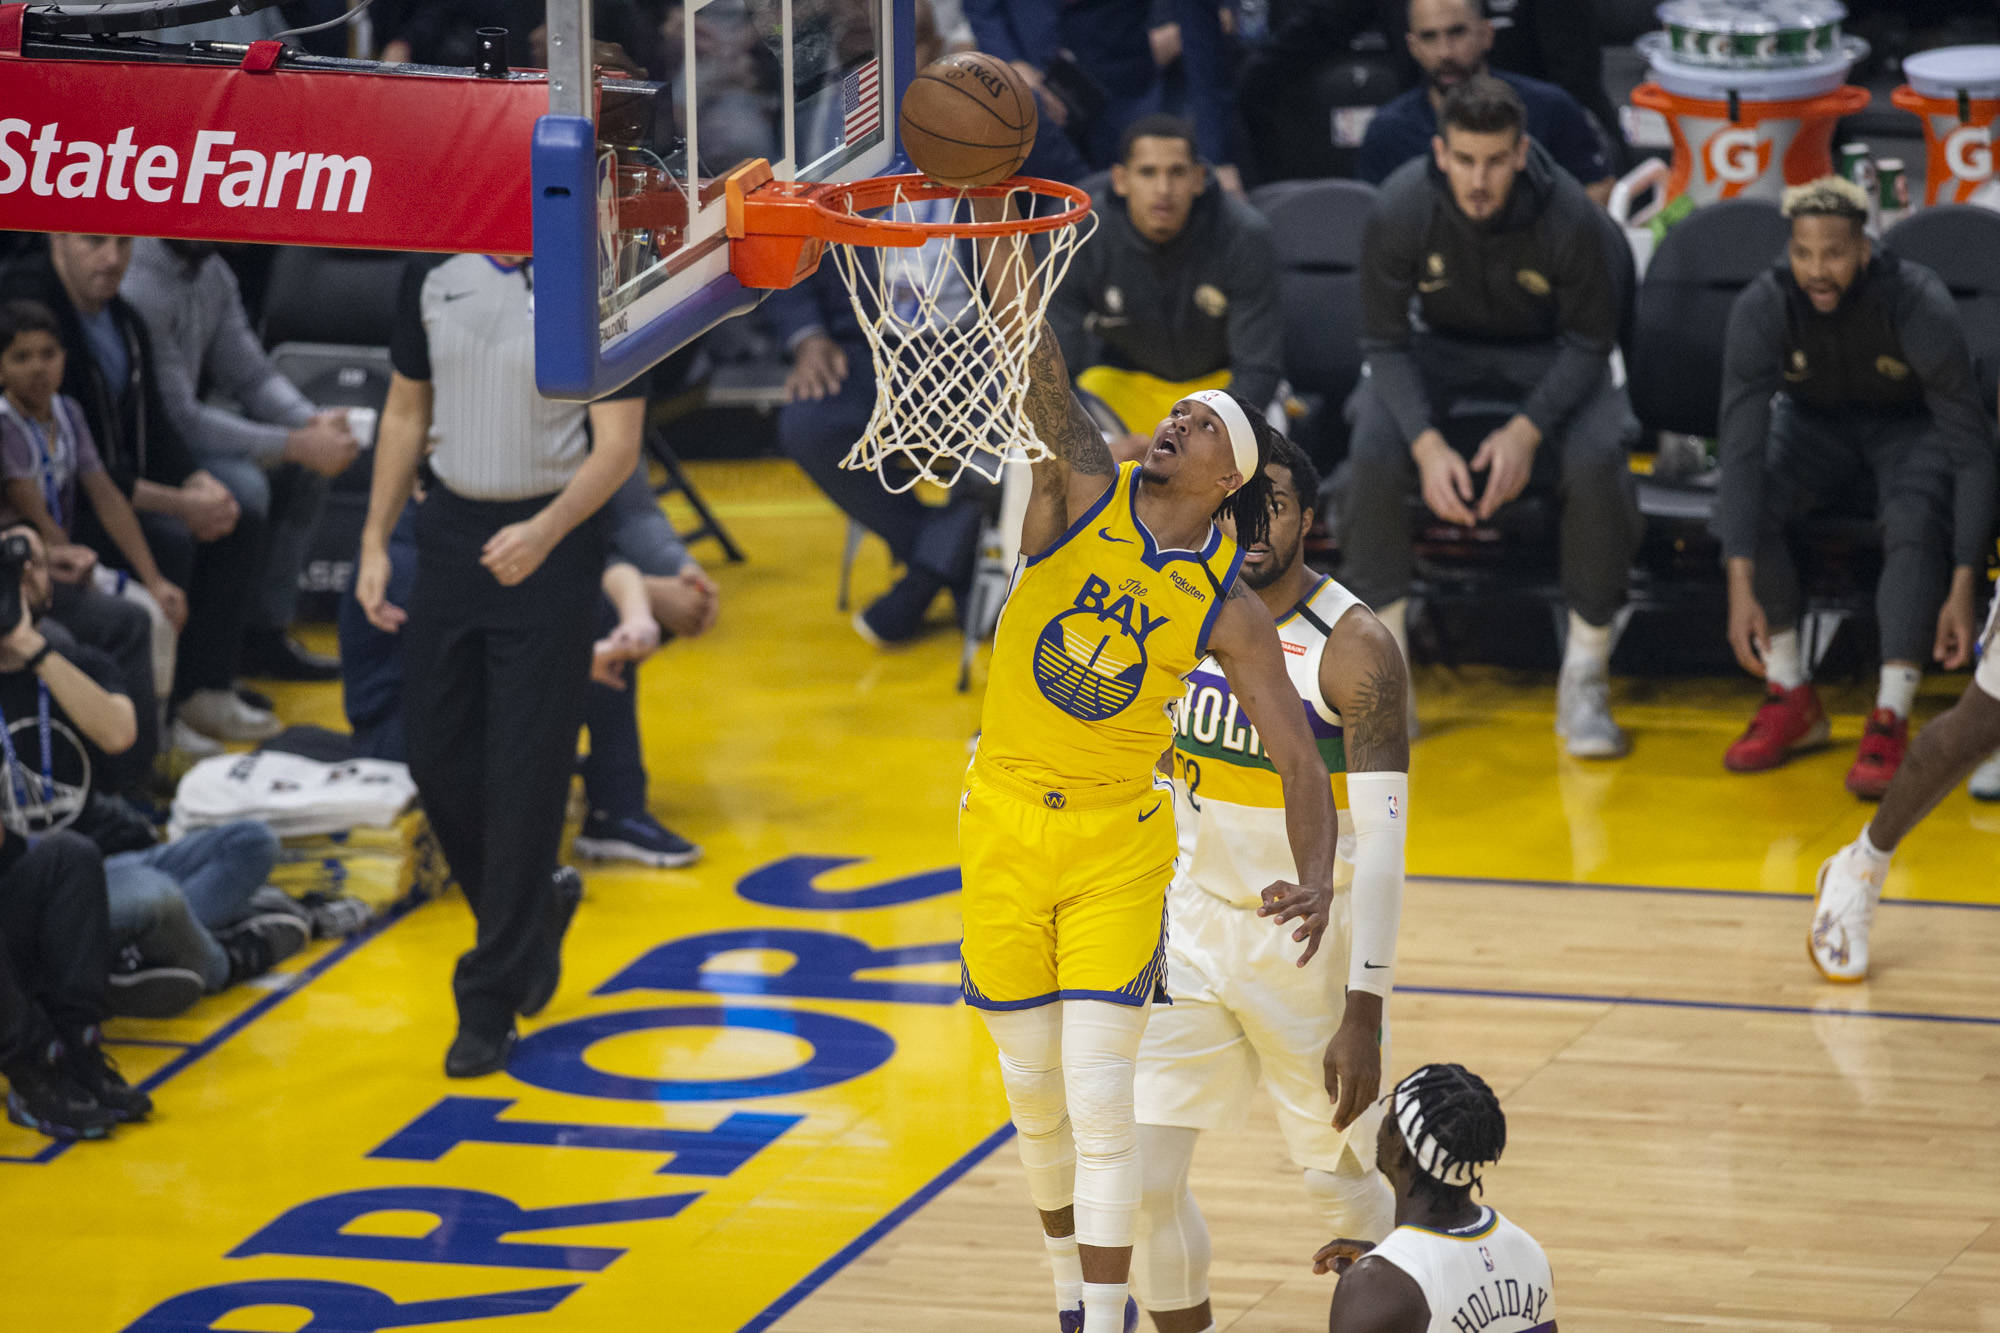 Golden State Warriors guard Damion Lee (1) dunks past the Pelicans defense in the 1st quarter at Chase Center in San Francisco, California on February 23, 2019. Photography by Chris Victorio | Special to the S.F. Examiner